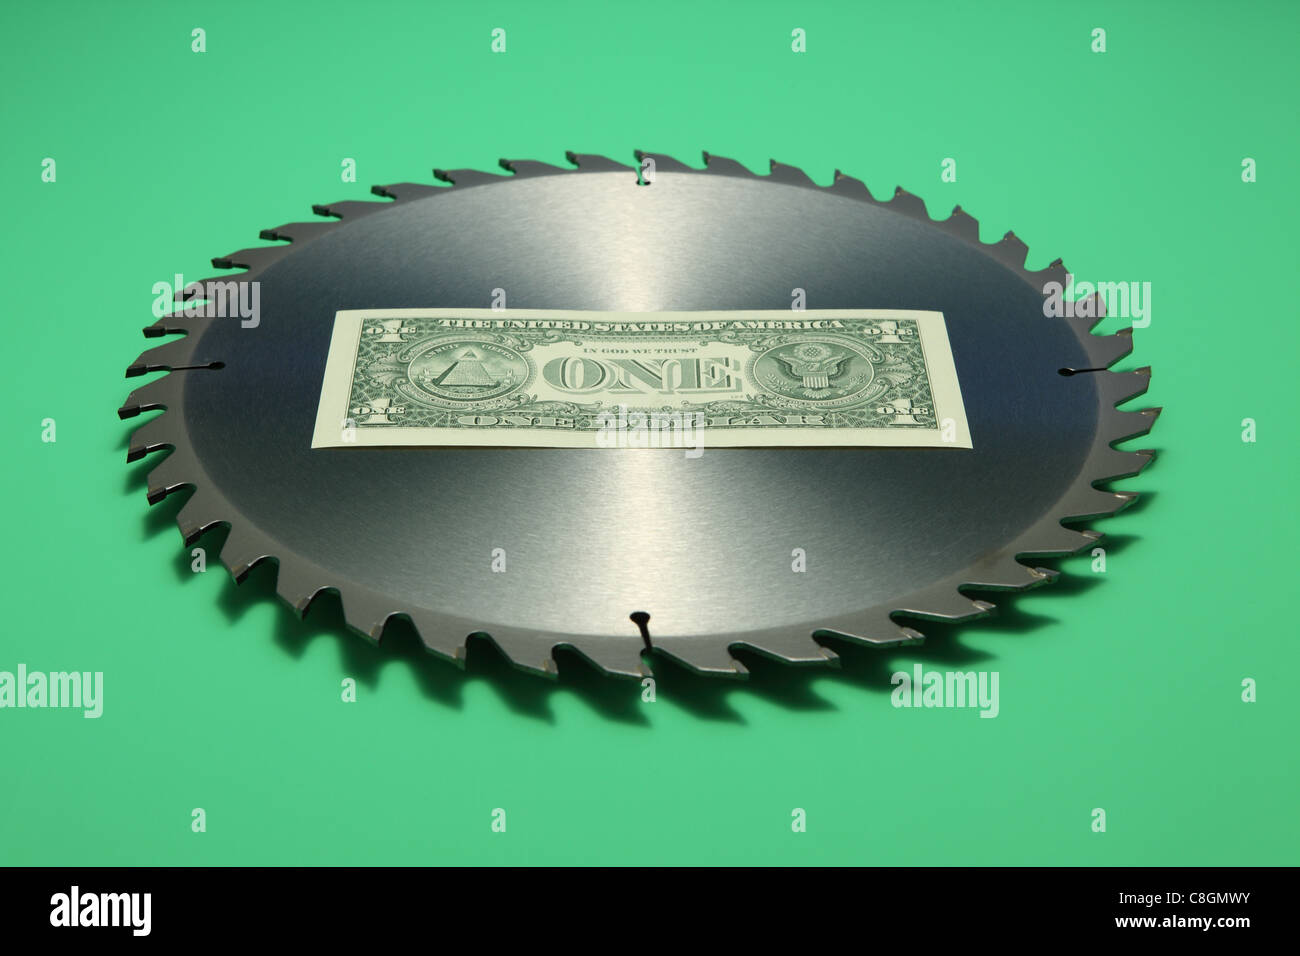 One US dollar banknote in the middle of a metal circular saw blade. Bright green background, banknote back facing - Stock Image